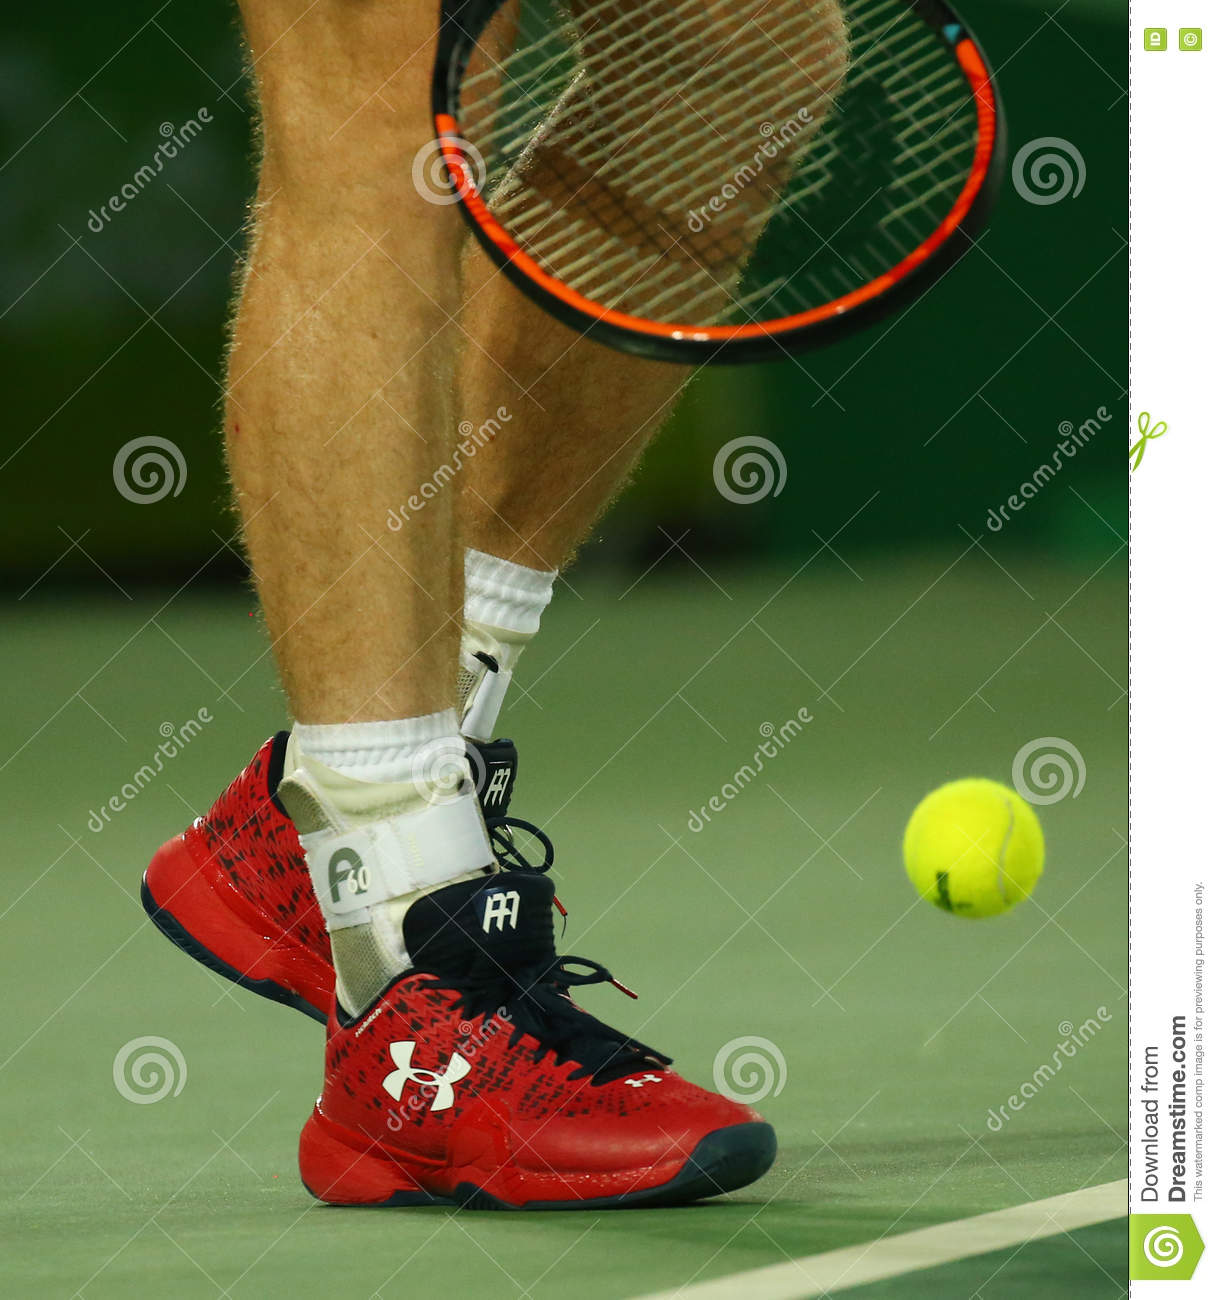 Cincuenta amenaza Sentimental  Olympic Champion Andy Murray Of Great Britain Wears Custom Under Armour  Tennis Shoes During Men`s Singles Final Of The Rio 2016 Editorial Stock  Photo - Image of champion, brazil: 81359498